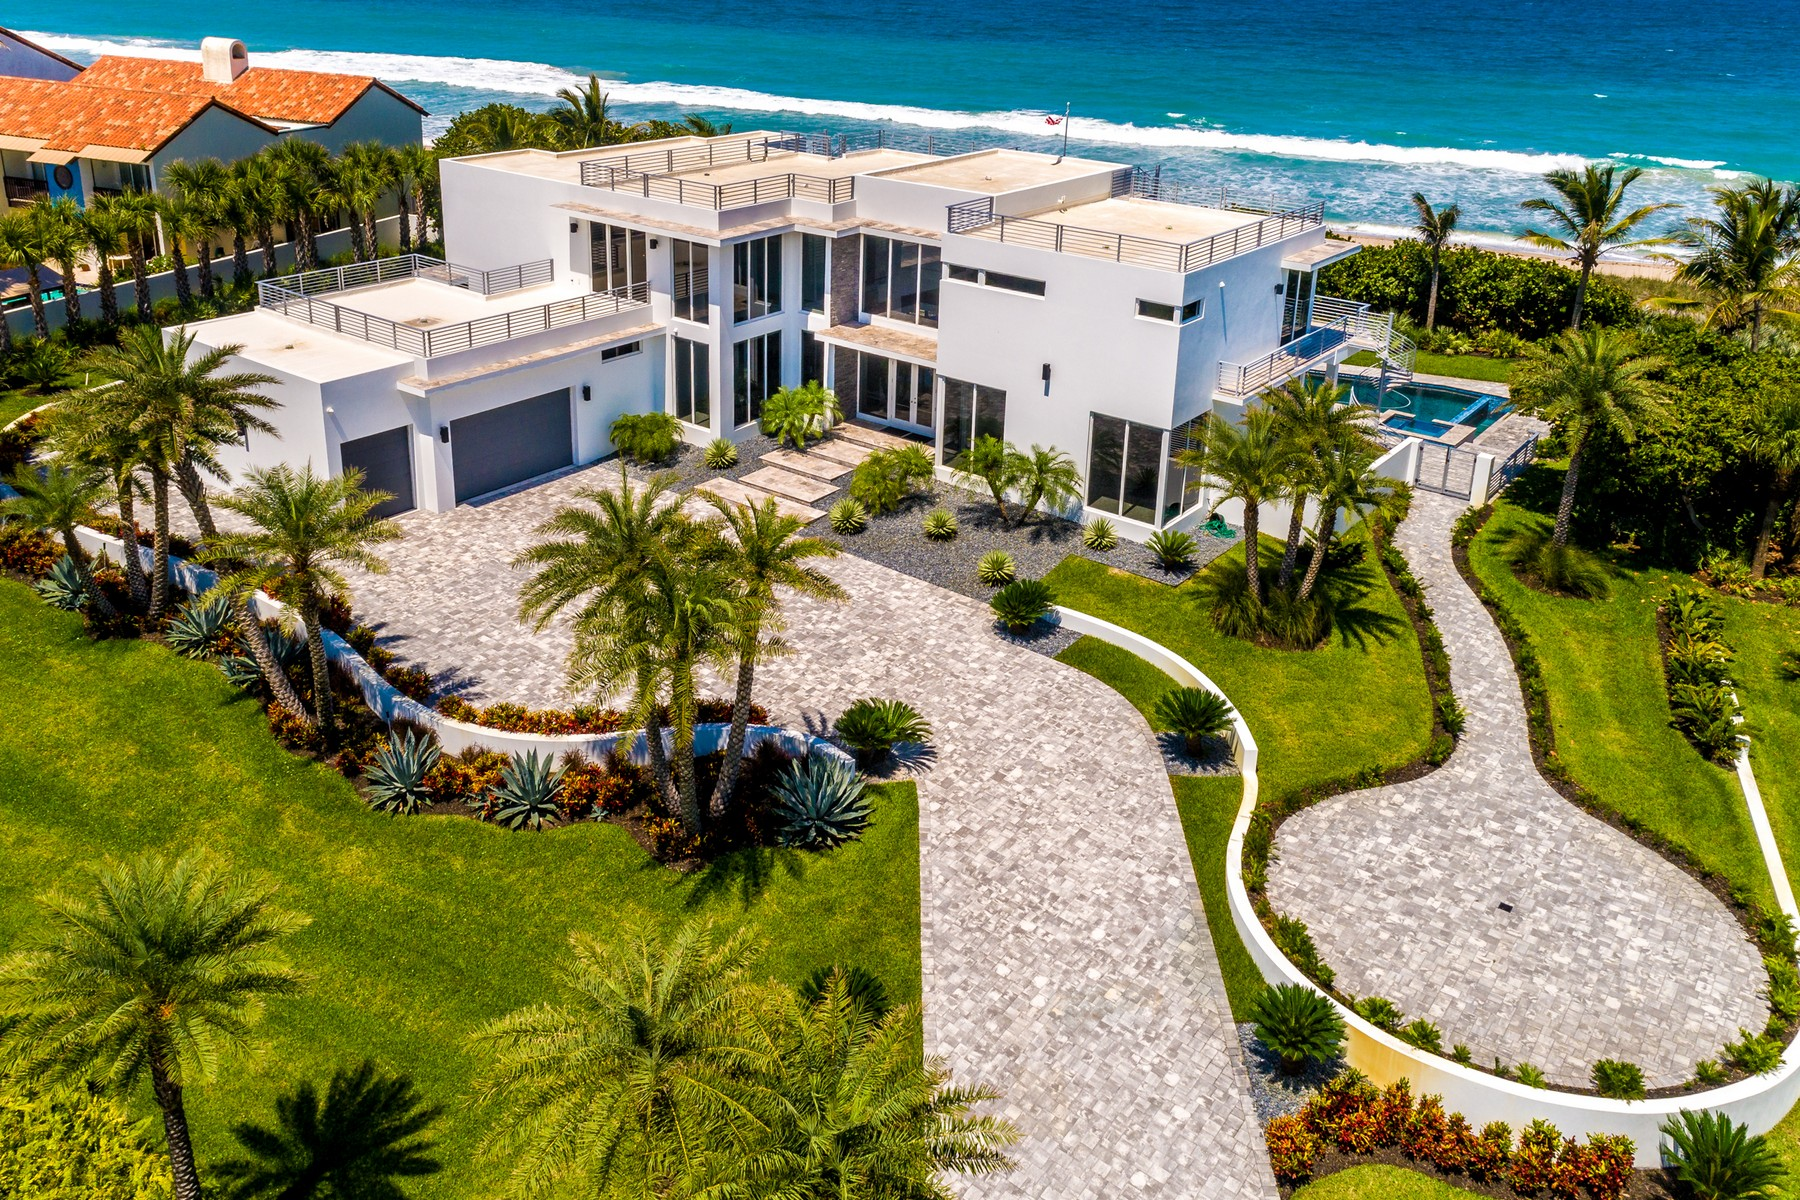 Single Family Homes için Satış at Modern Masterpiece with Captivating Panoramic Ocean and River Views 9445 Highway A1A, Melbourne Beach, Florida 32951 Amerika Birleşik Devletleri